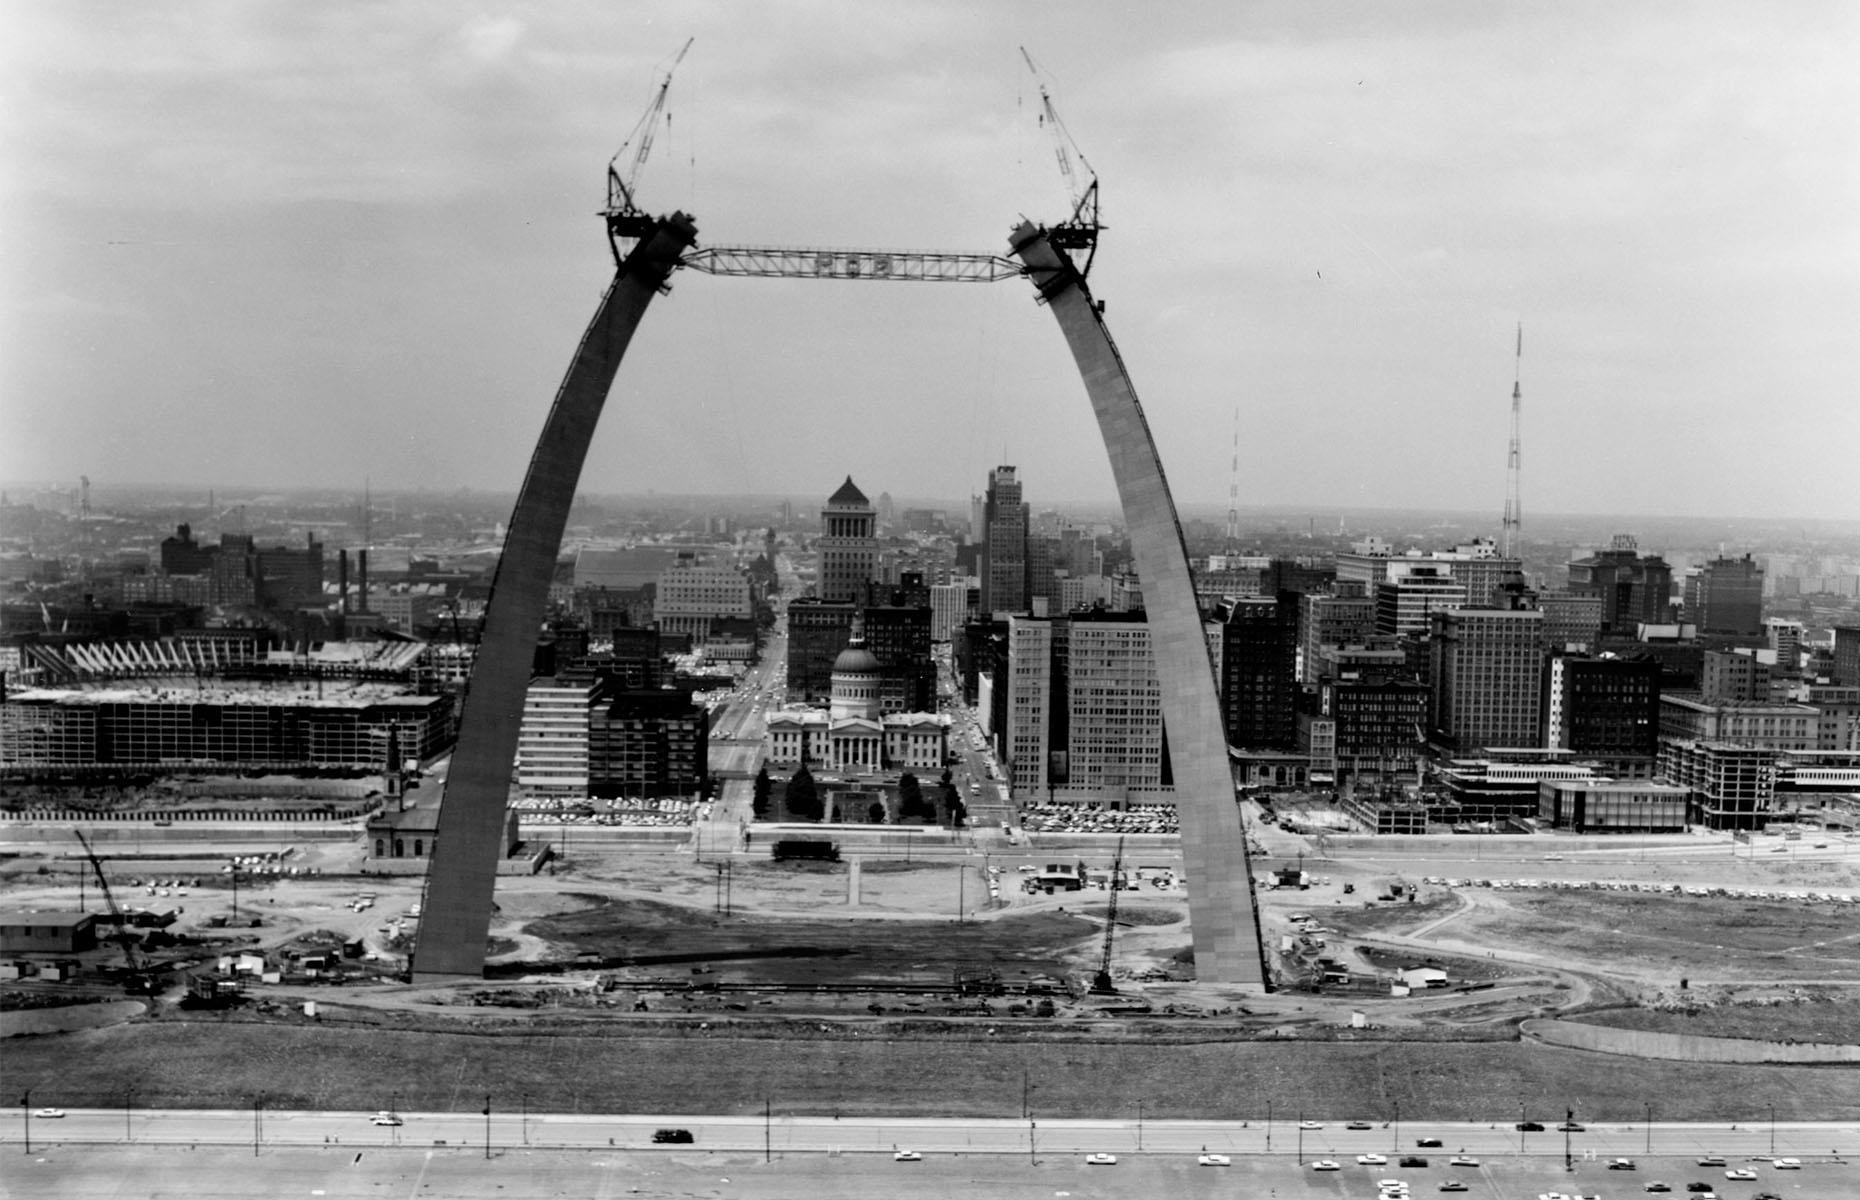 Slide 44 of 51: St. Louis' famous Gateway Arch was built between 1963 and 1965 and was created to symbolize the movement of settlers towards the American west, a concept pioneered by Thomas Jefferson. Pictured here towards the end of its construction in 1965, the arch's final keystone is thought to contain a time capsule filled with letters written by more than 760,000 local people.